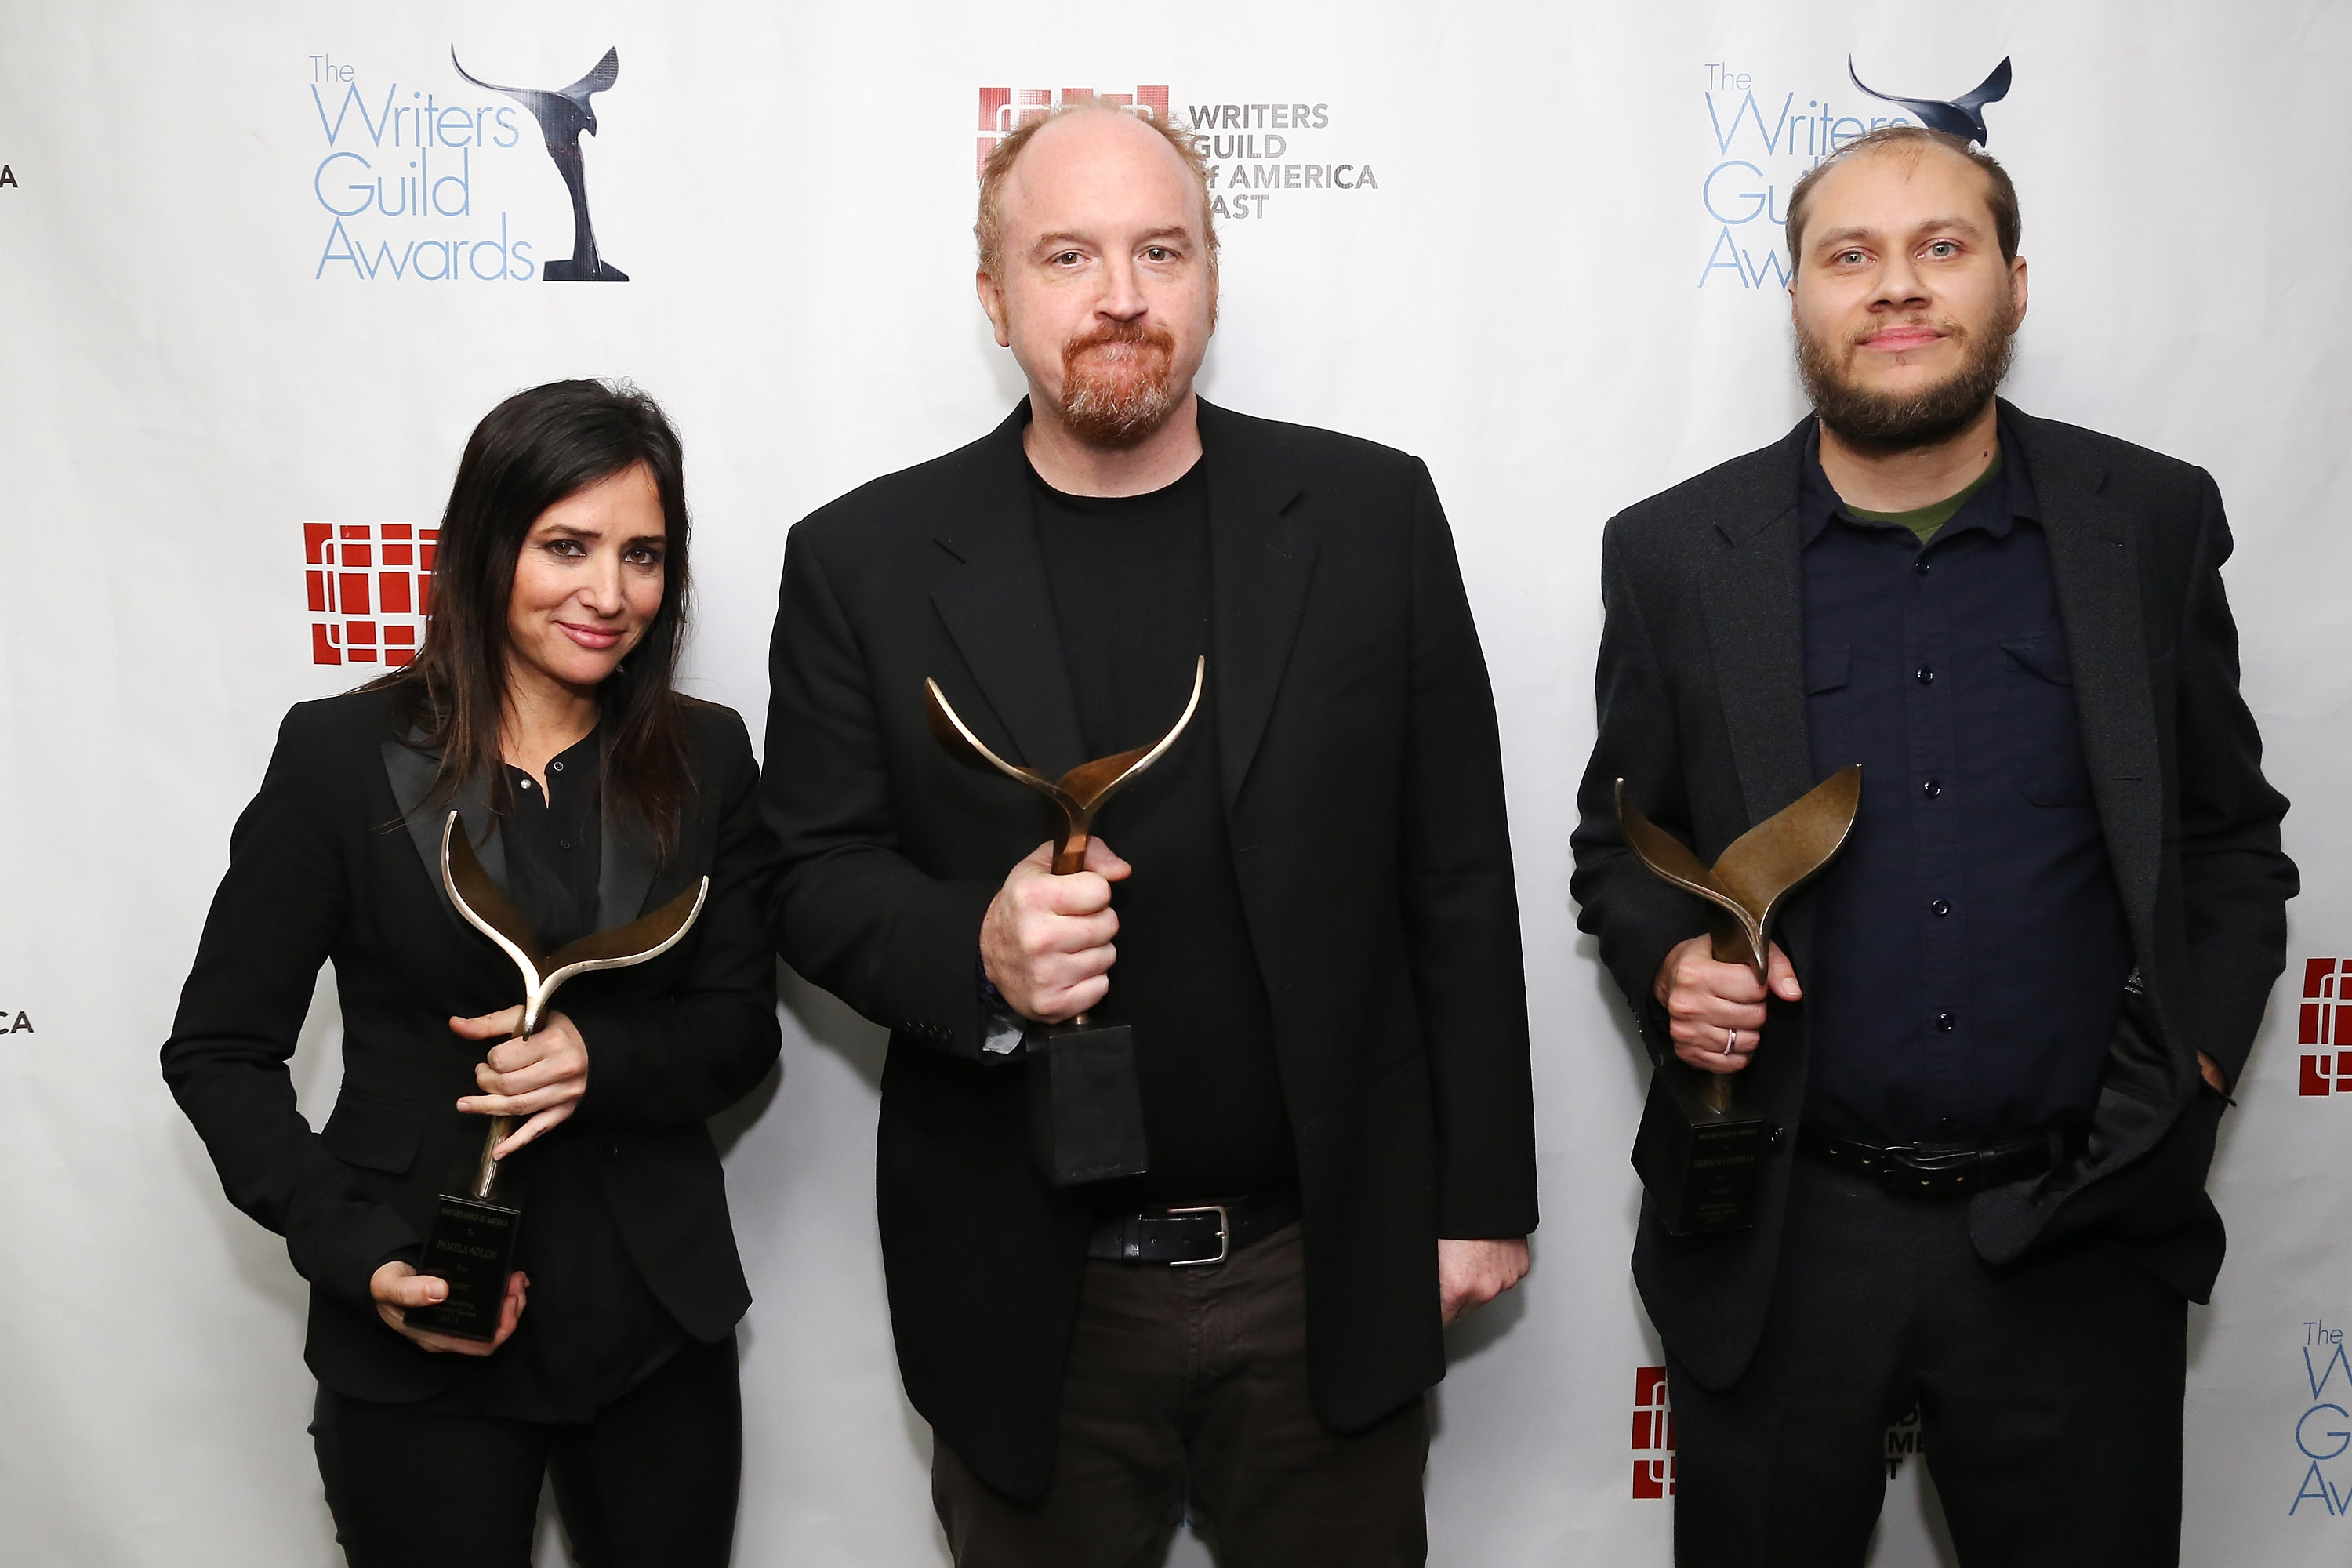 Louis CK May Be Dating Pamela Adlon For Real This Time — The Duo Have Been Spotted Acting Cozy